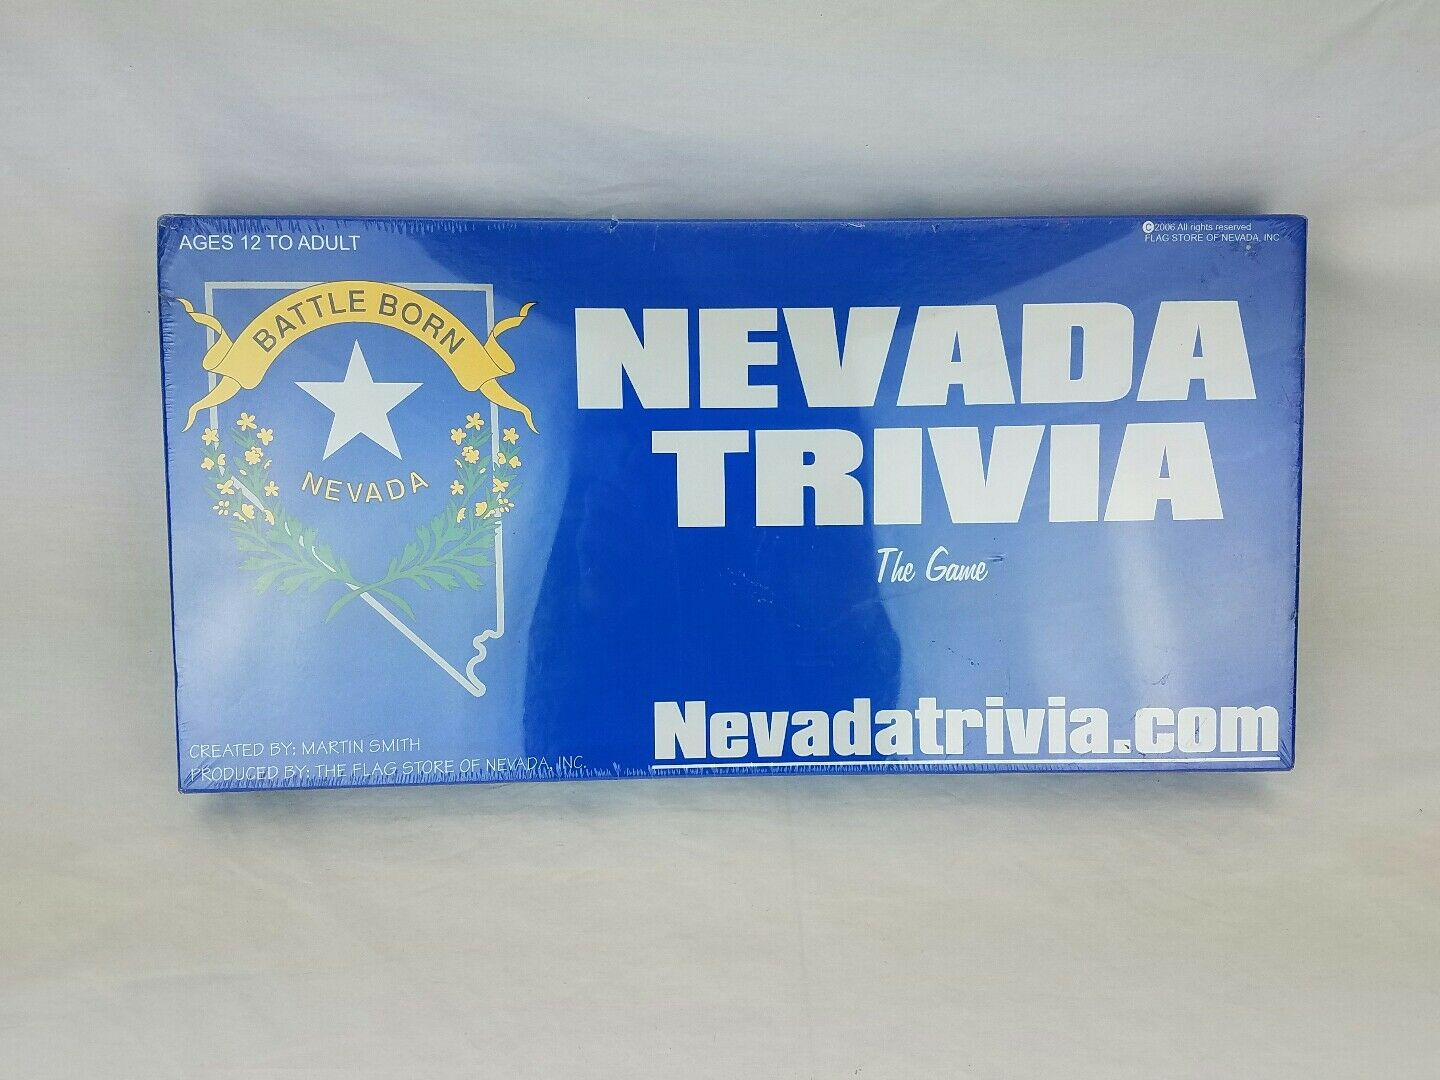 benvenuto per ordinare Nevada Trivia The gioco Martin Smith Flag Flag Flag Store  alta quaità